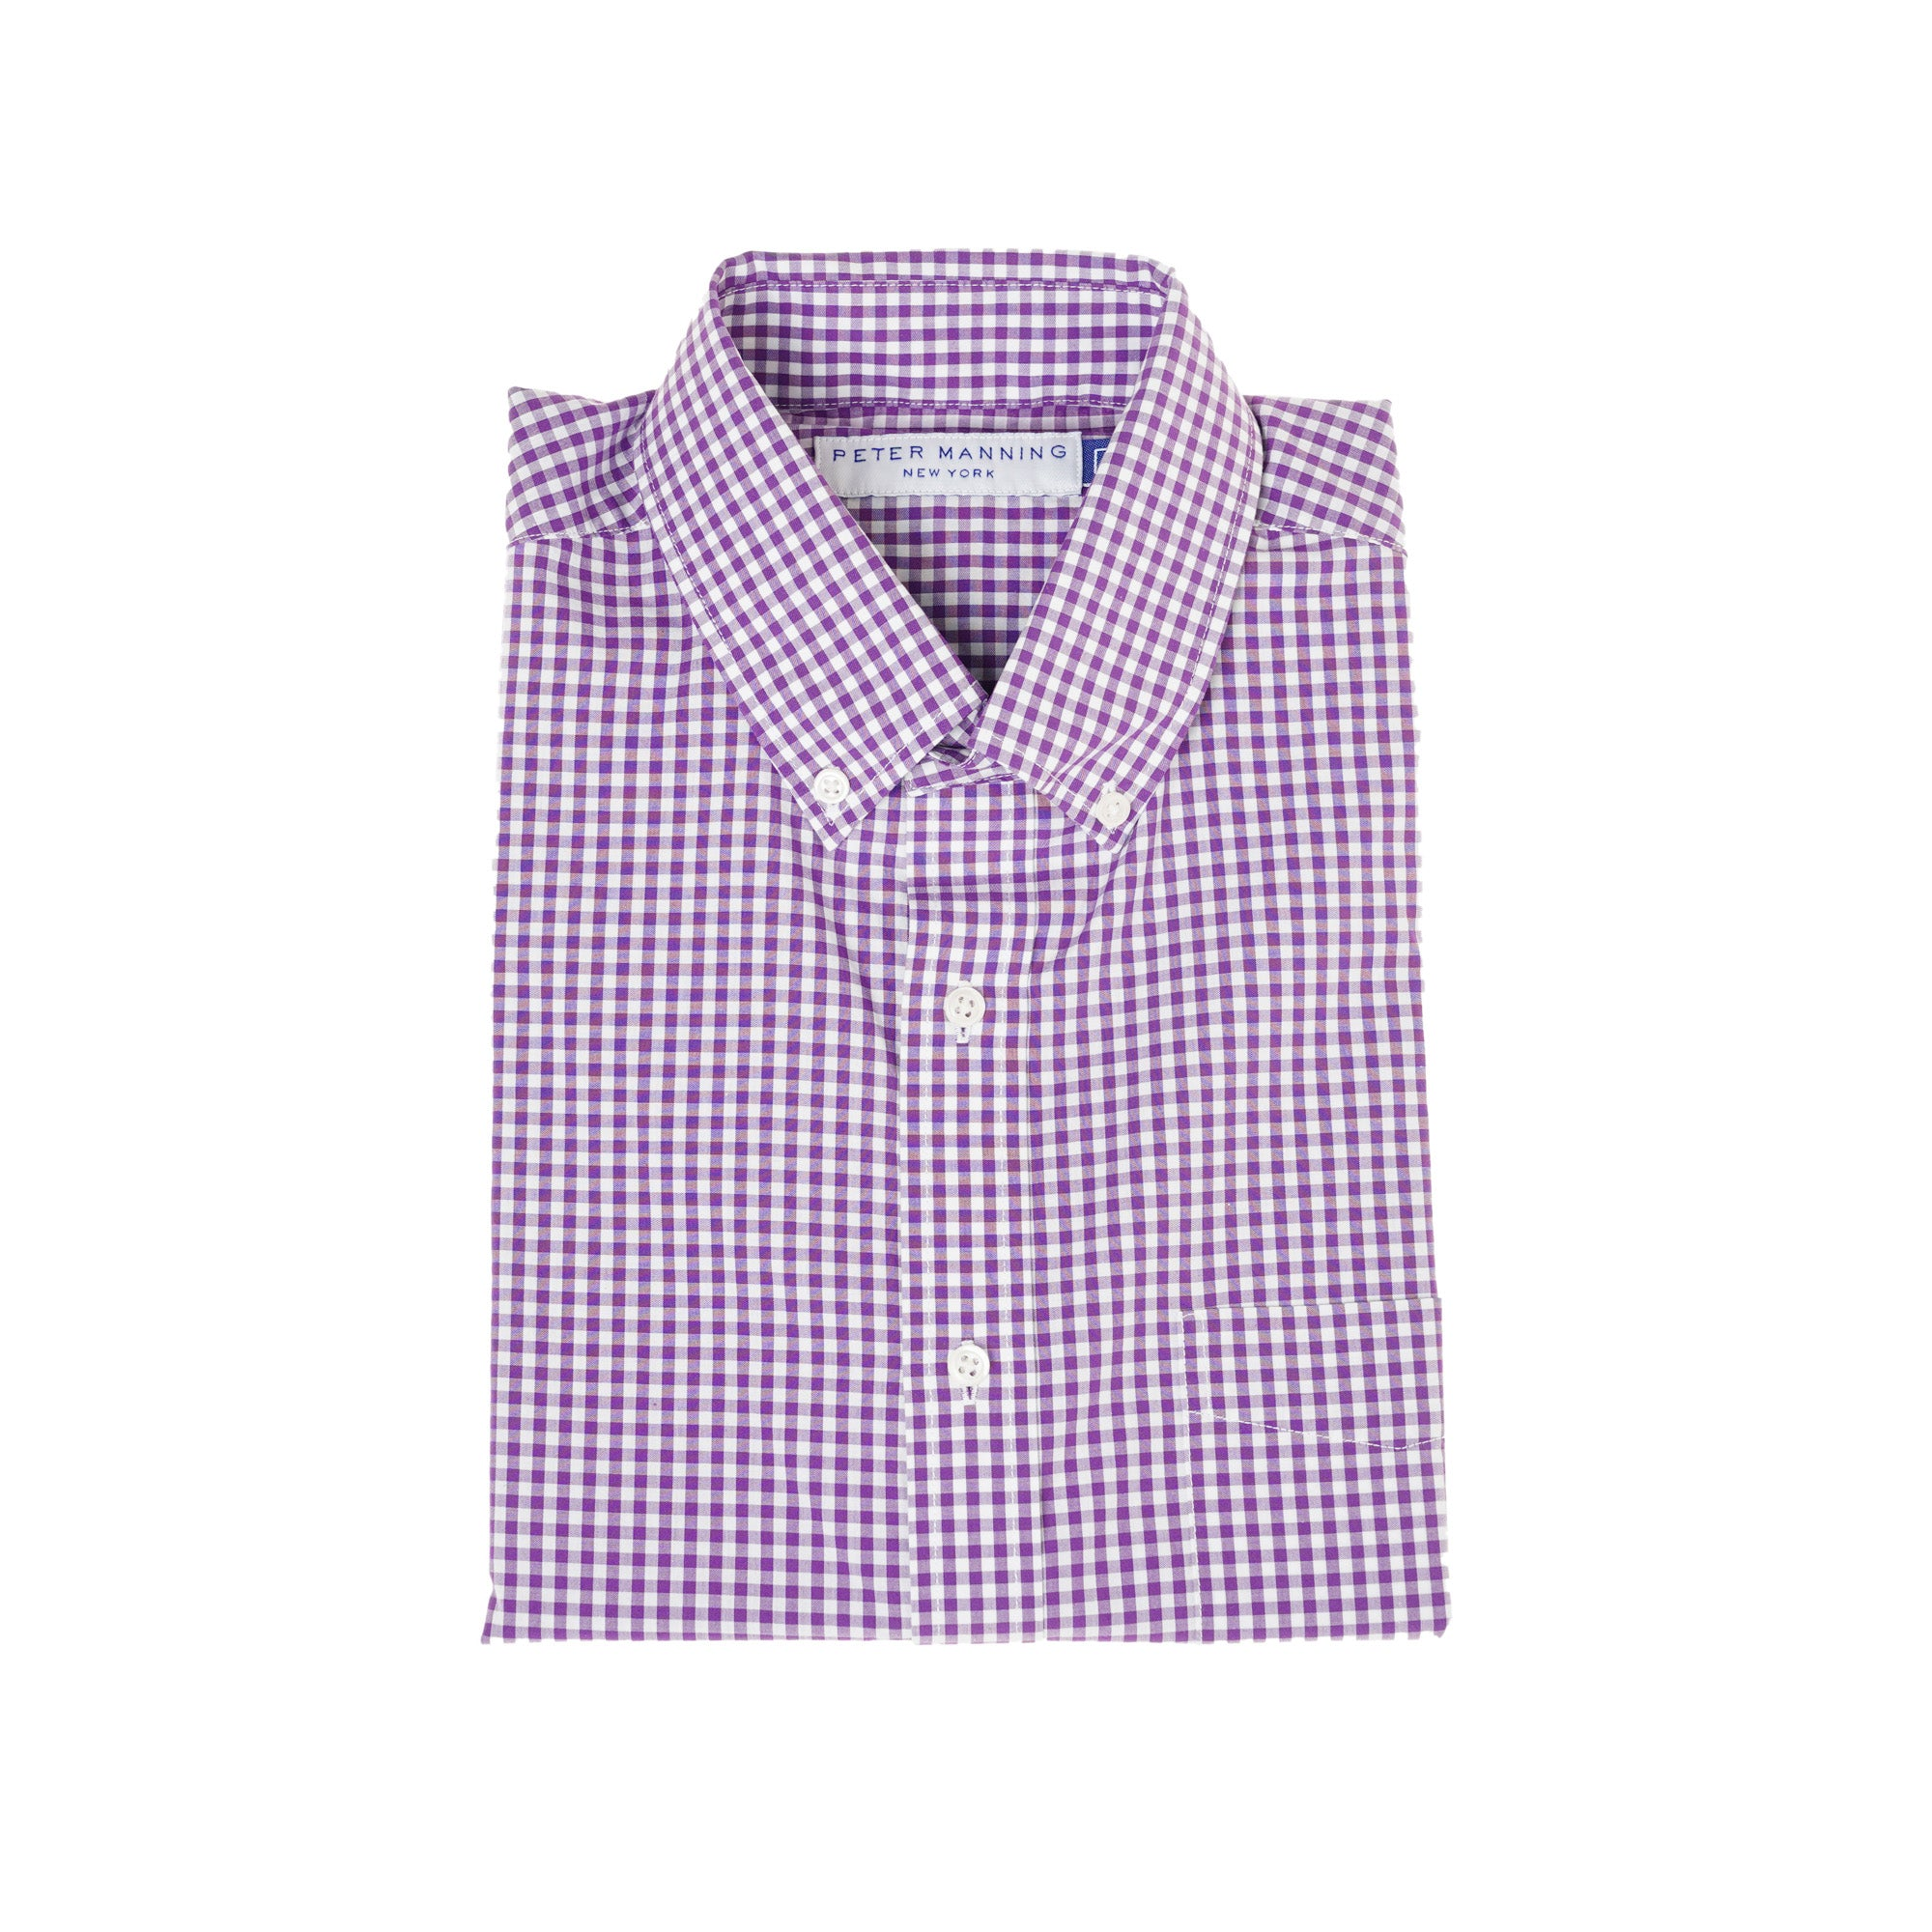 Everyday Shirts Standard Fit - Purple Gingham